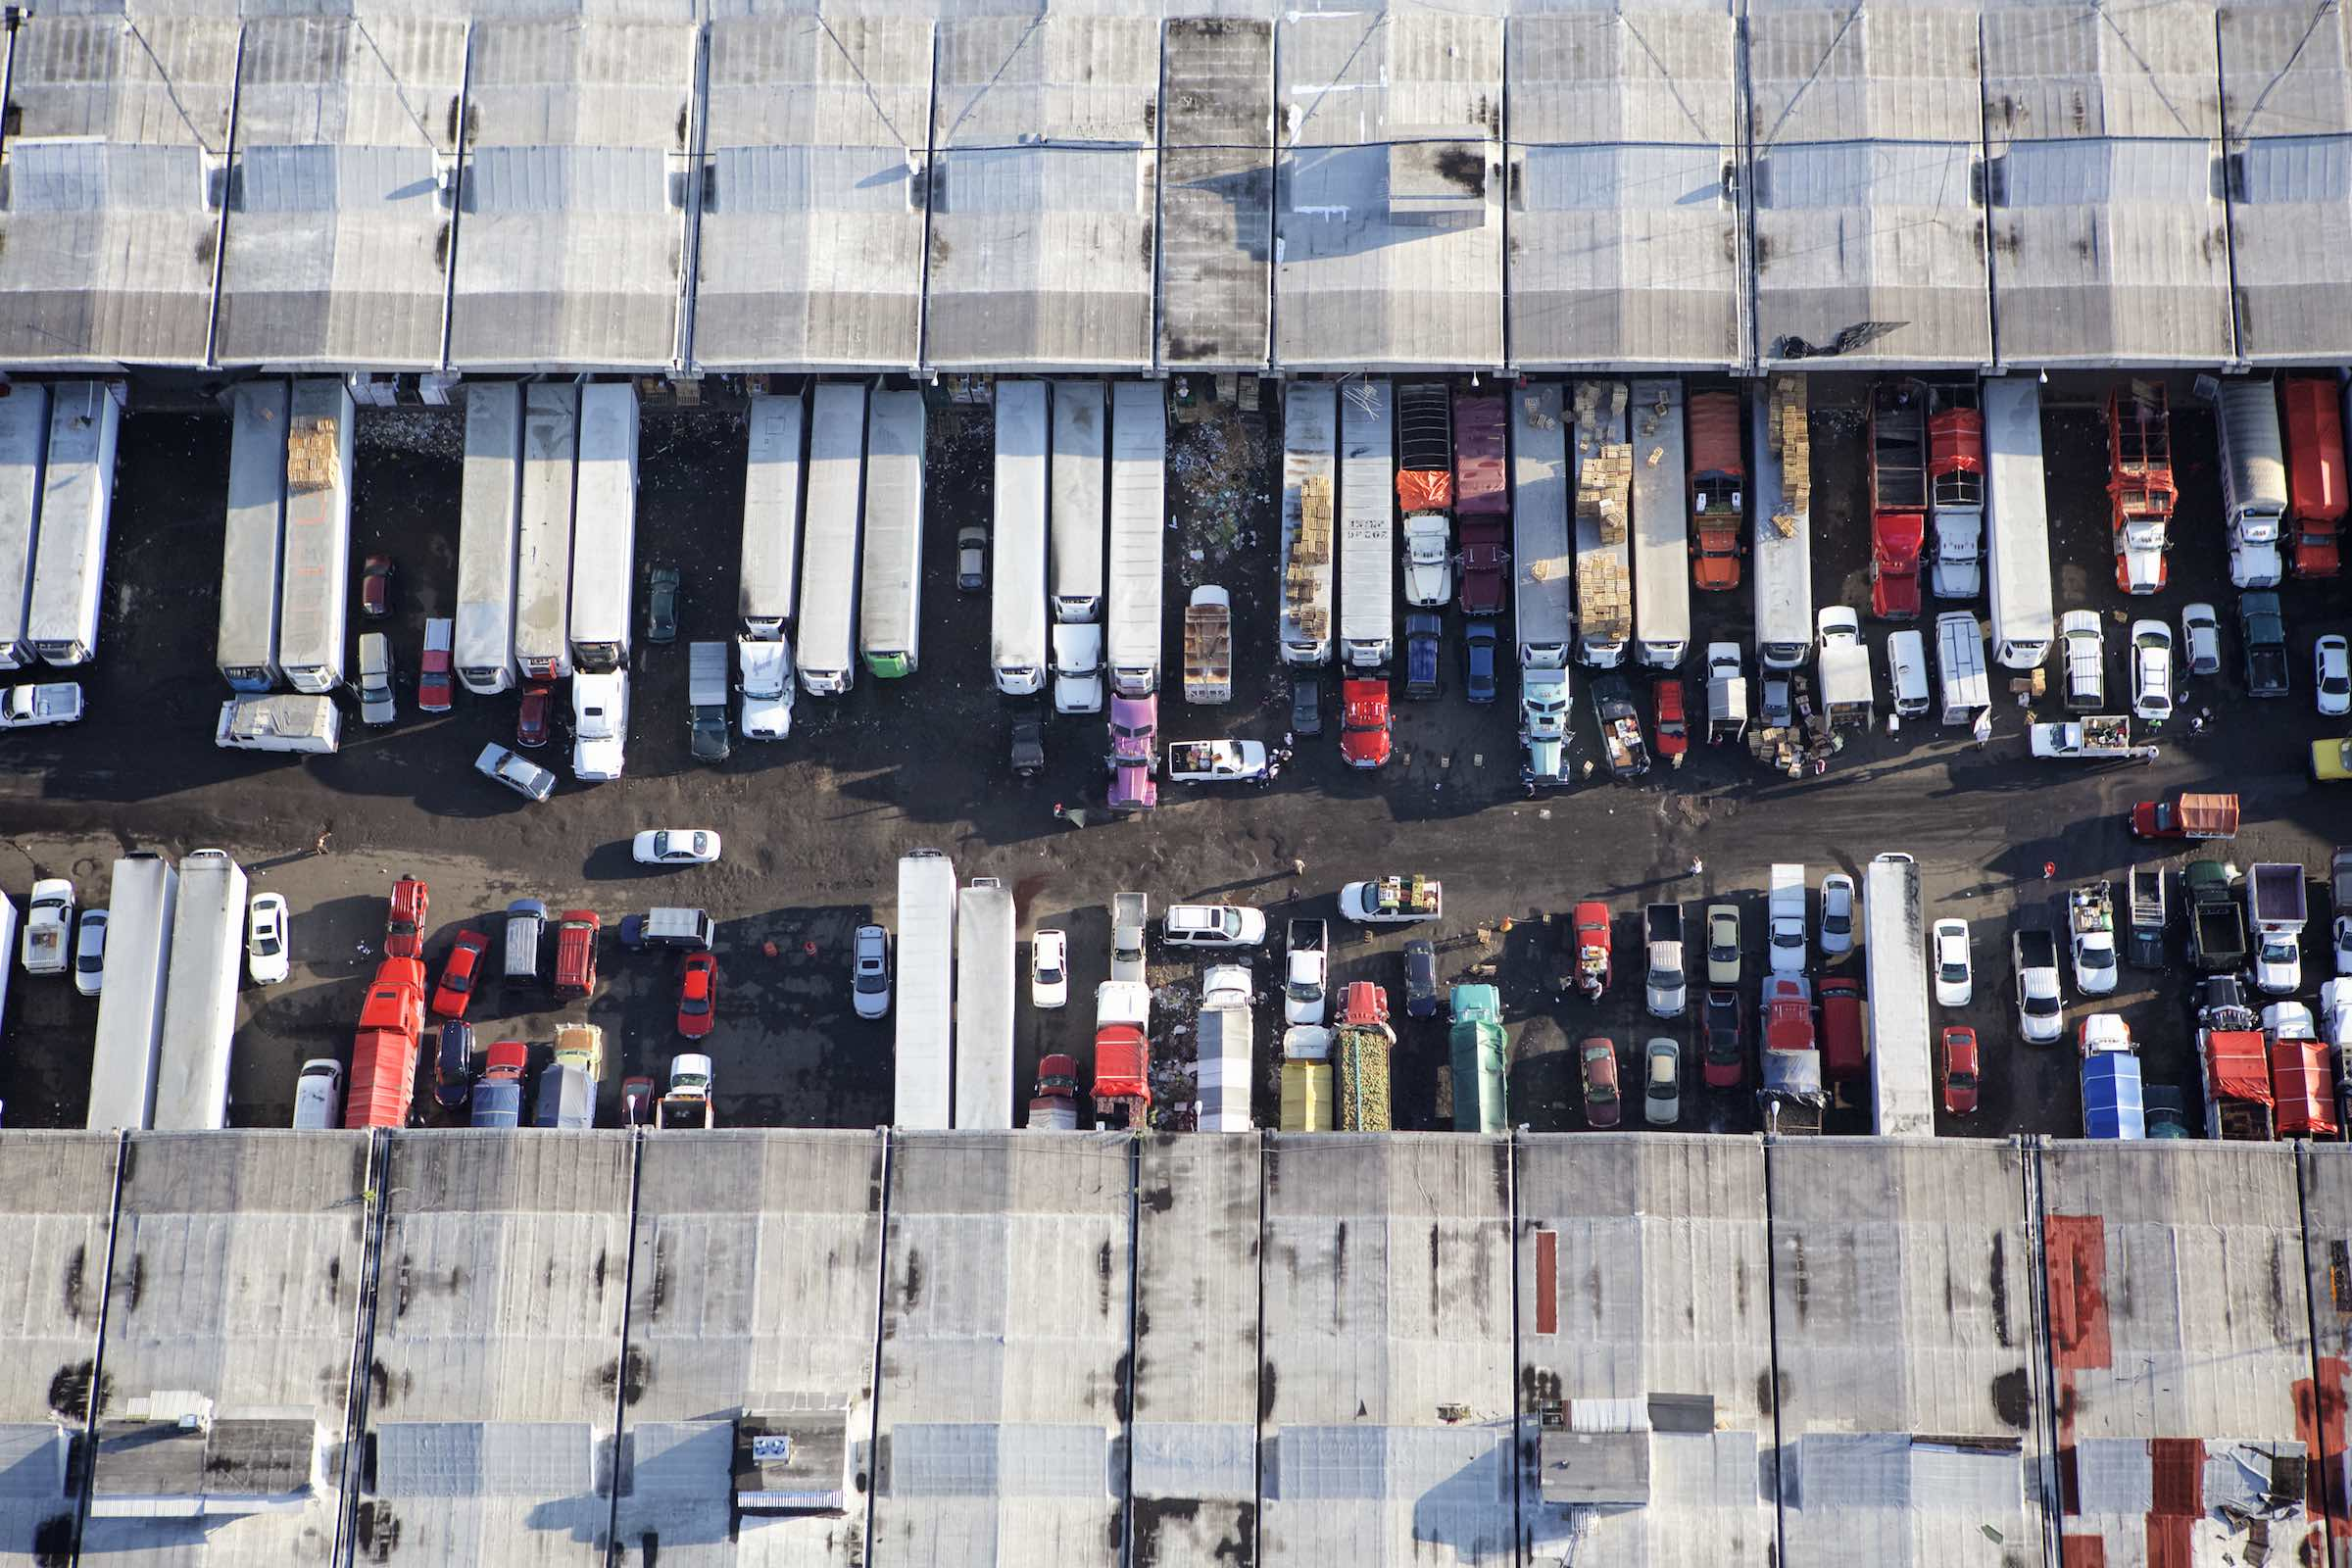 Trucks unloading goods at the food market in Mexico.